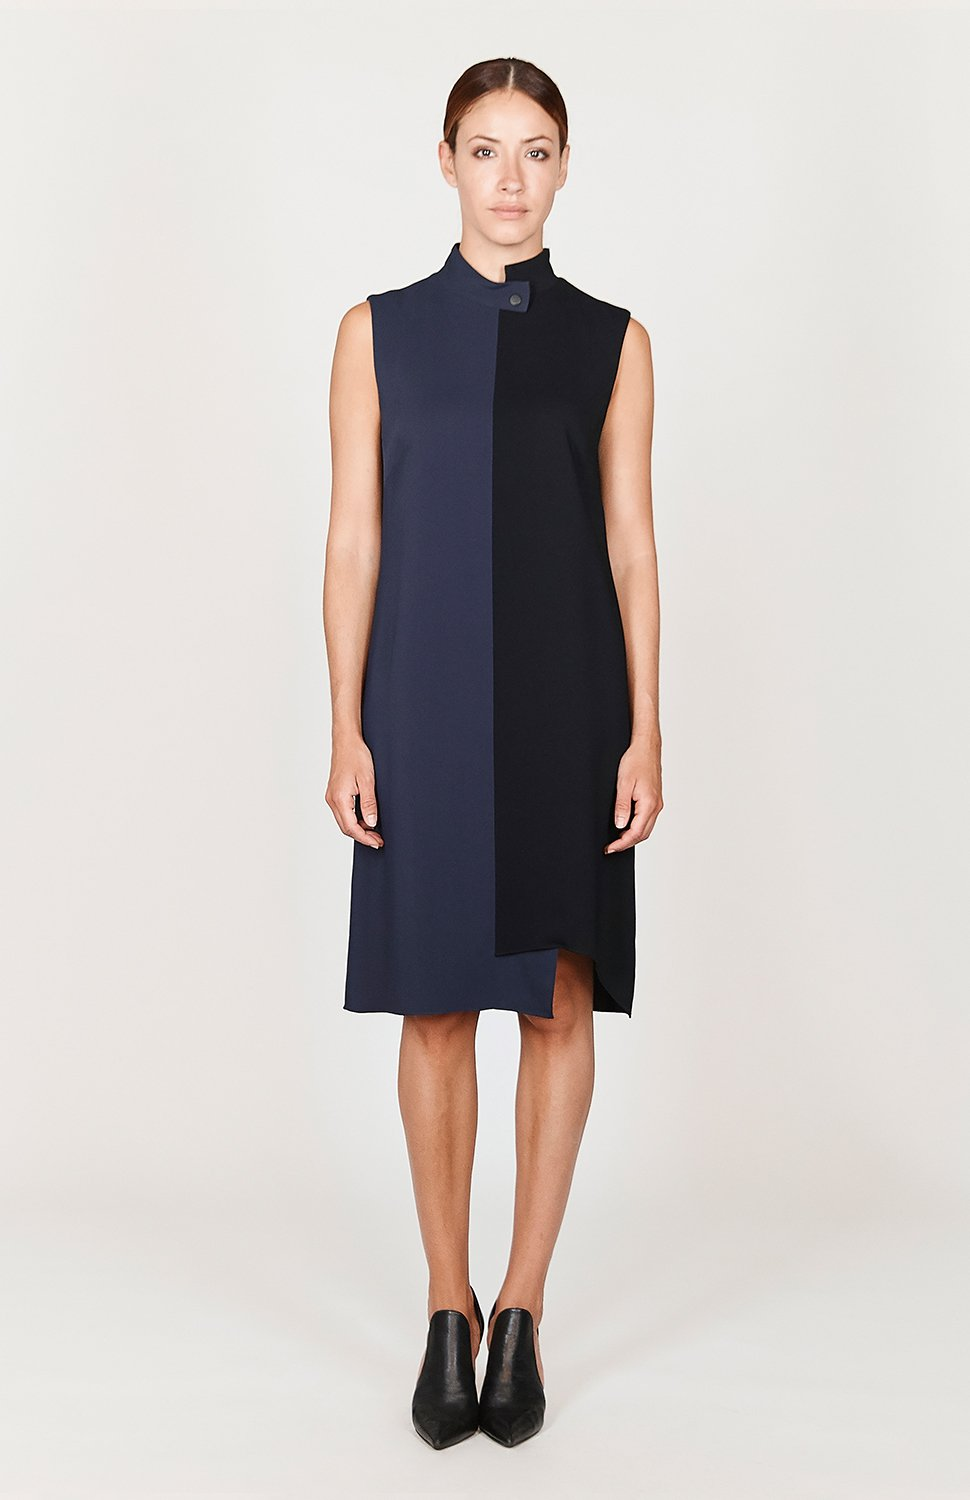 Mi Jong Lee Stretch Base Asymmetric Shift Dress - Basics